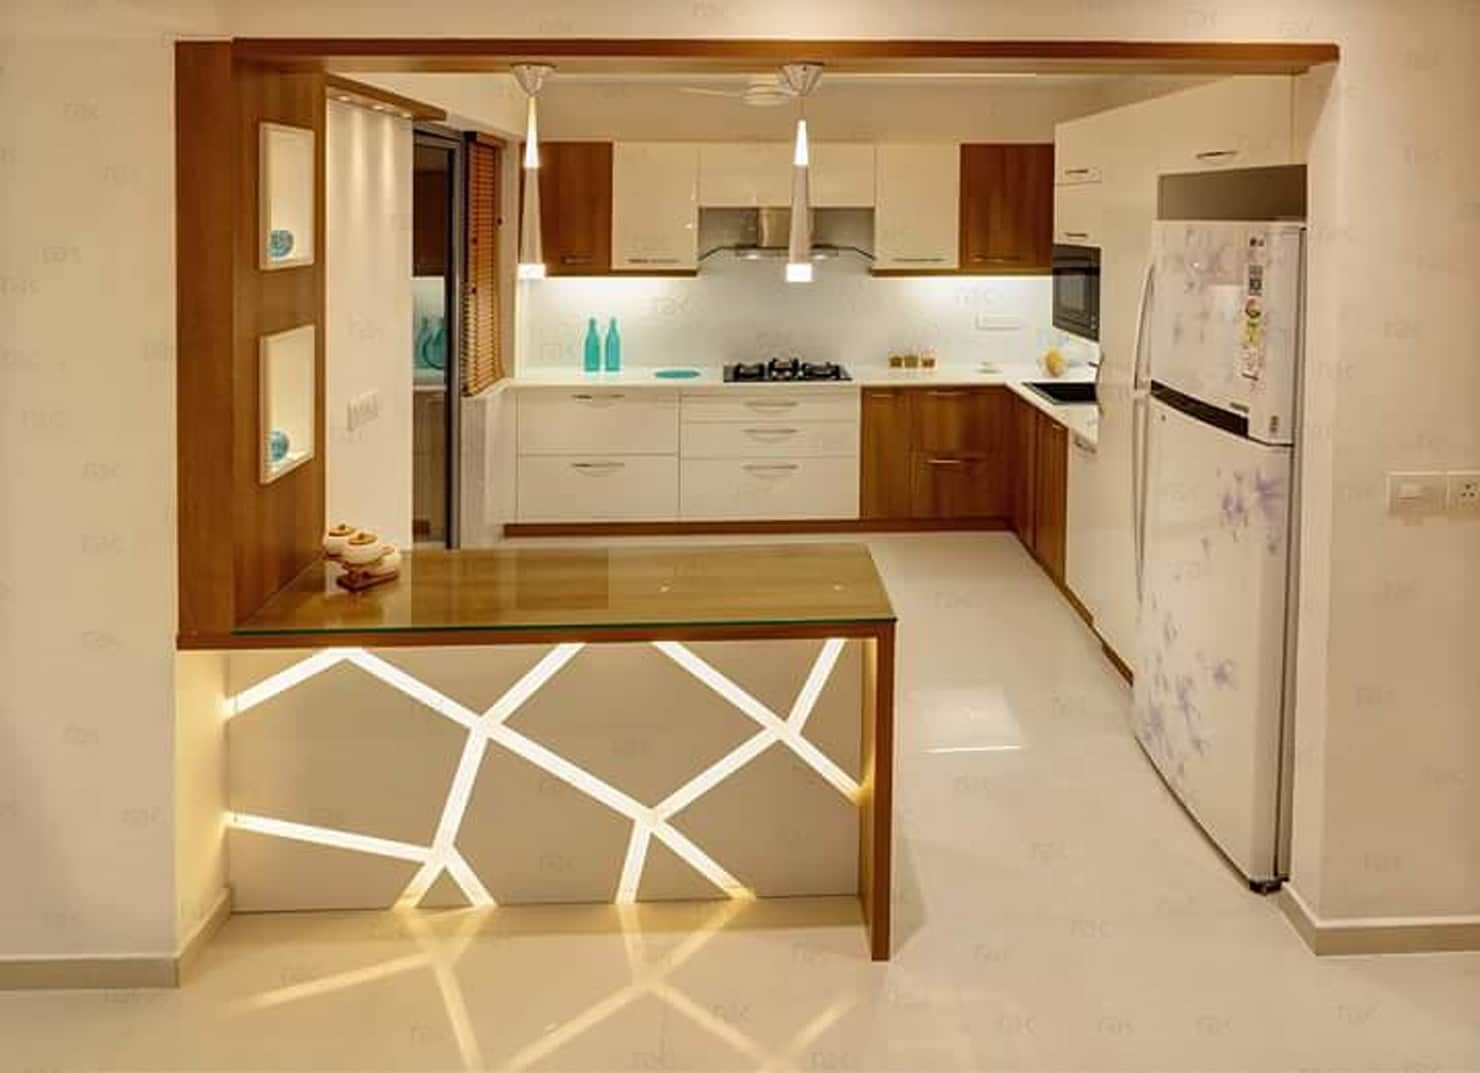 interior classic style kitchen by aj atelier architects classic in 2020 kitchen room design on kitchen interior classic id=15234